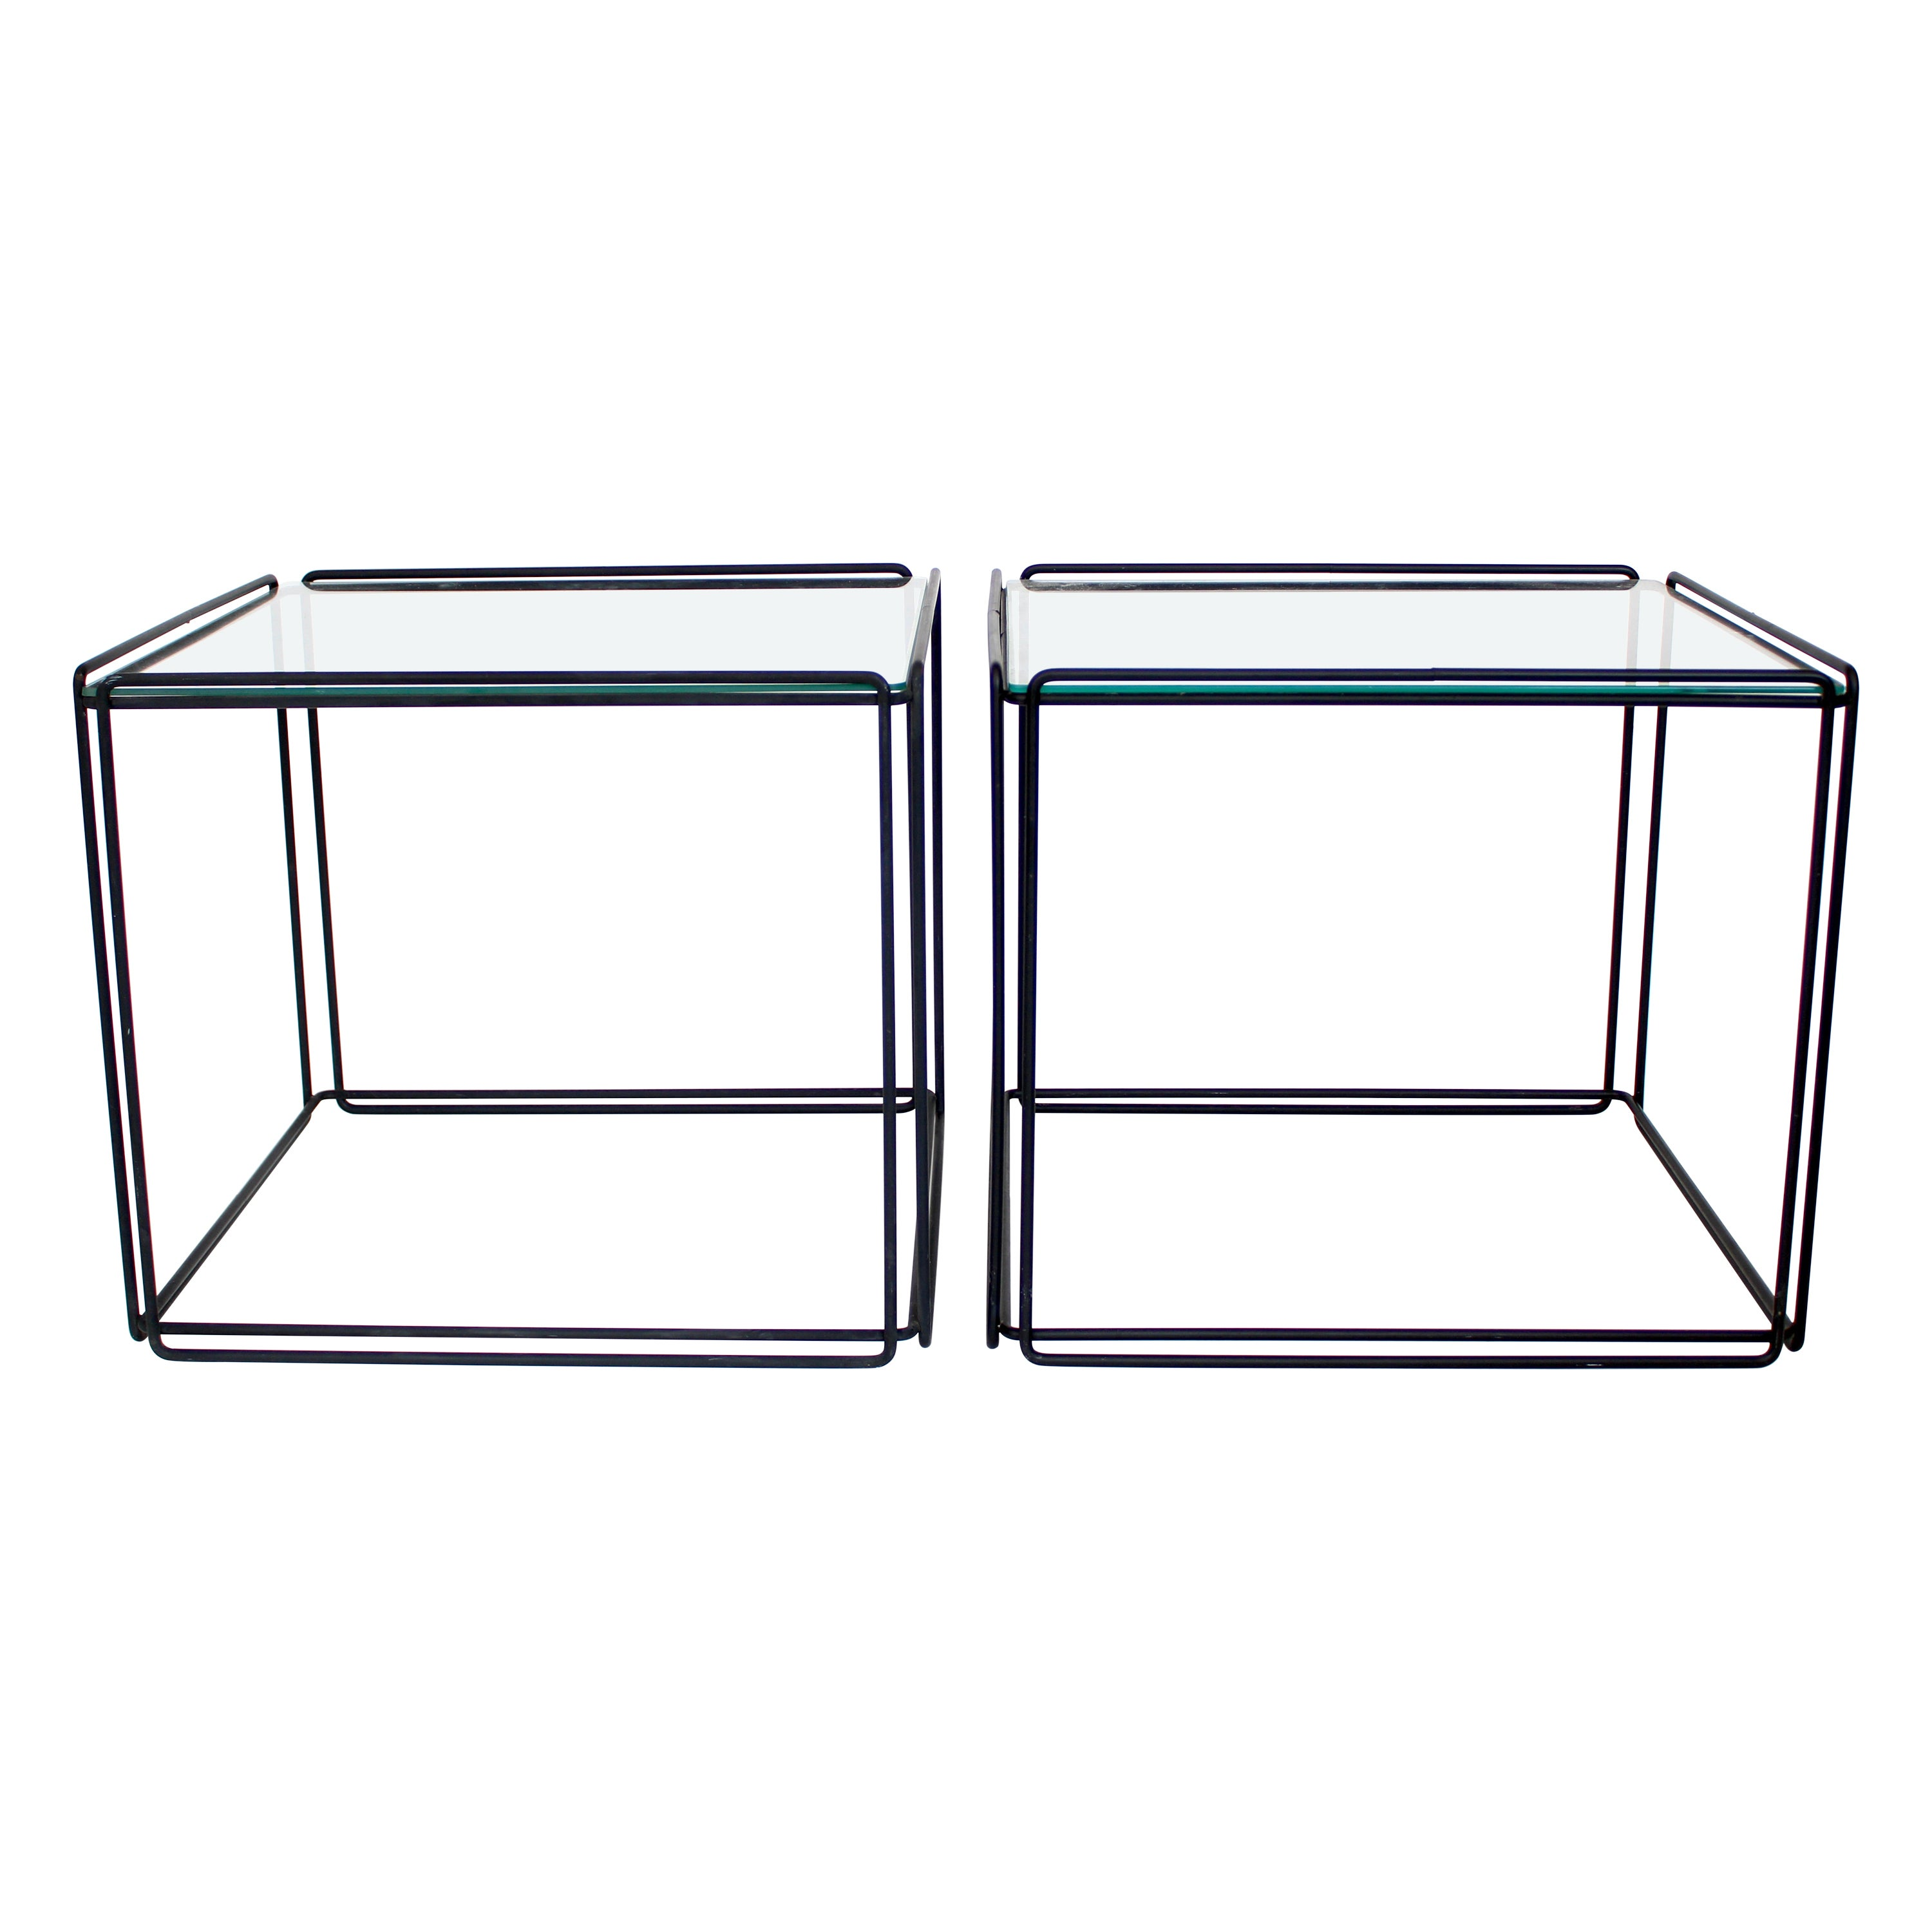 Max Sauze Isoceles Pair of Black Metal and Glass Side or Coffee Tables, France